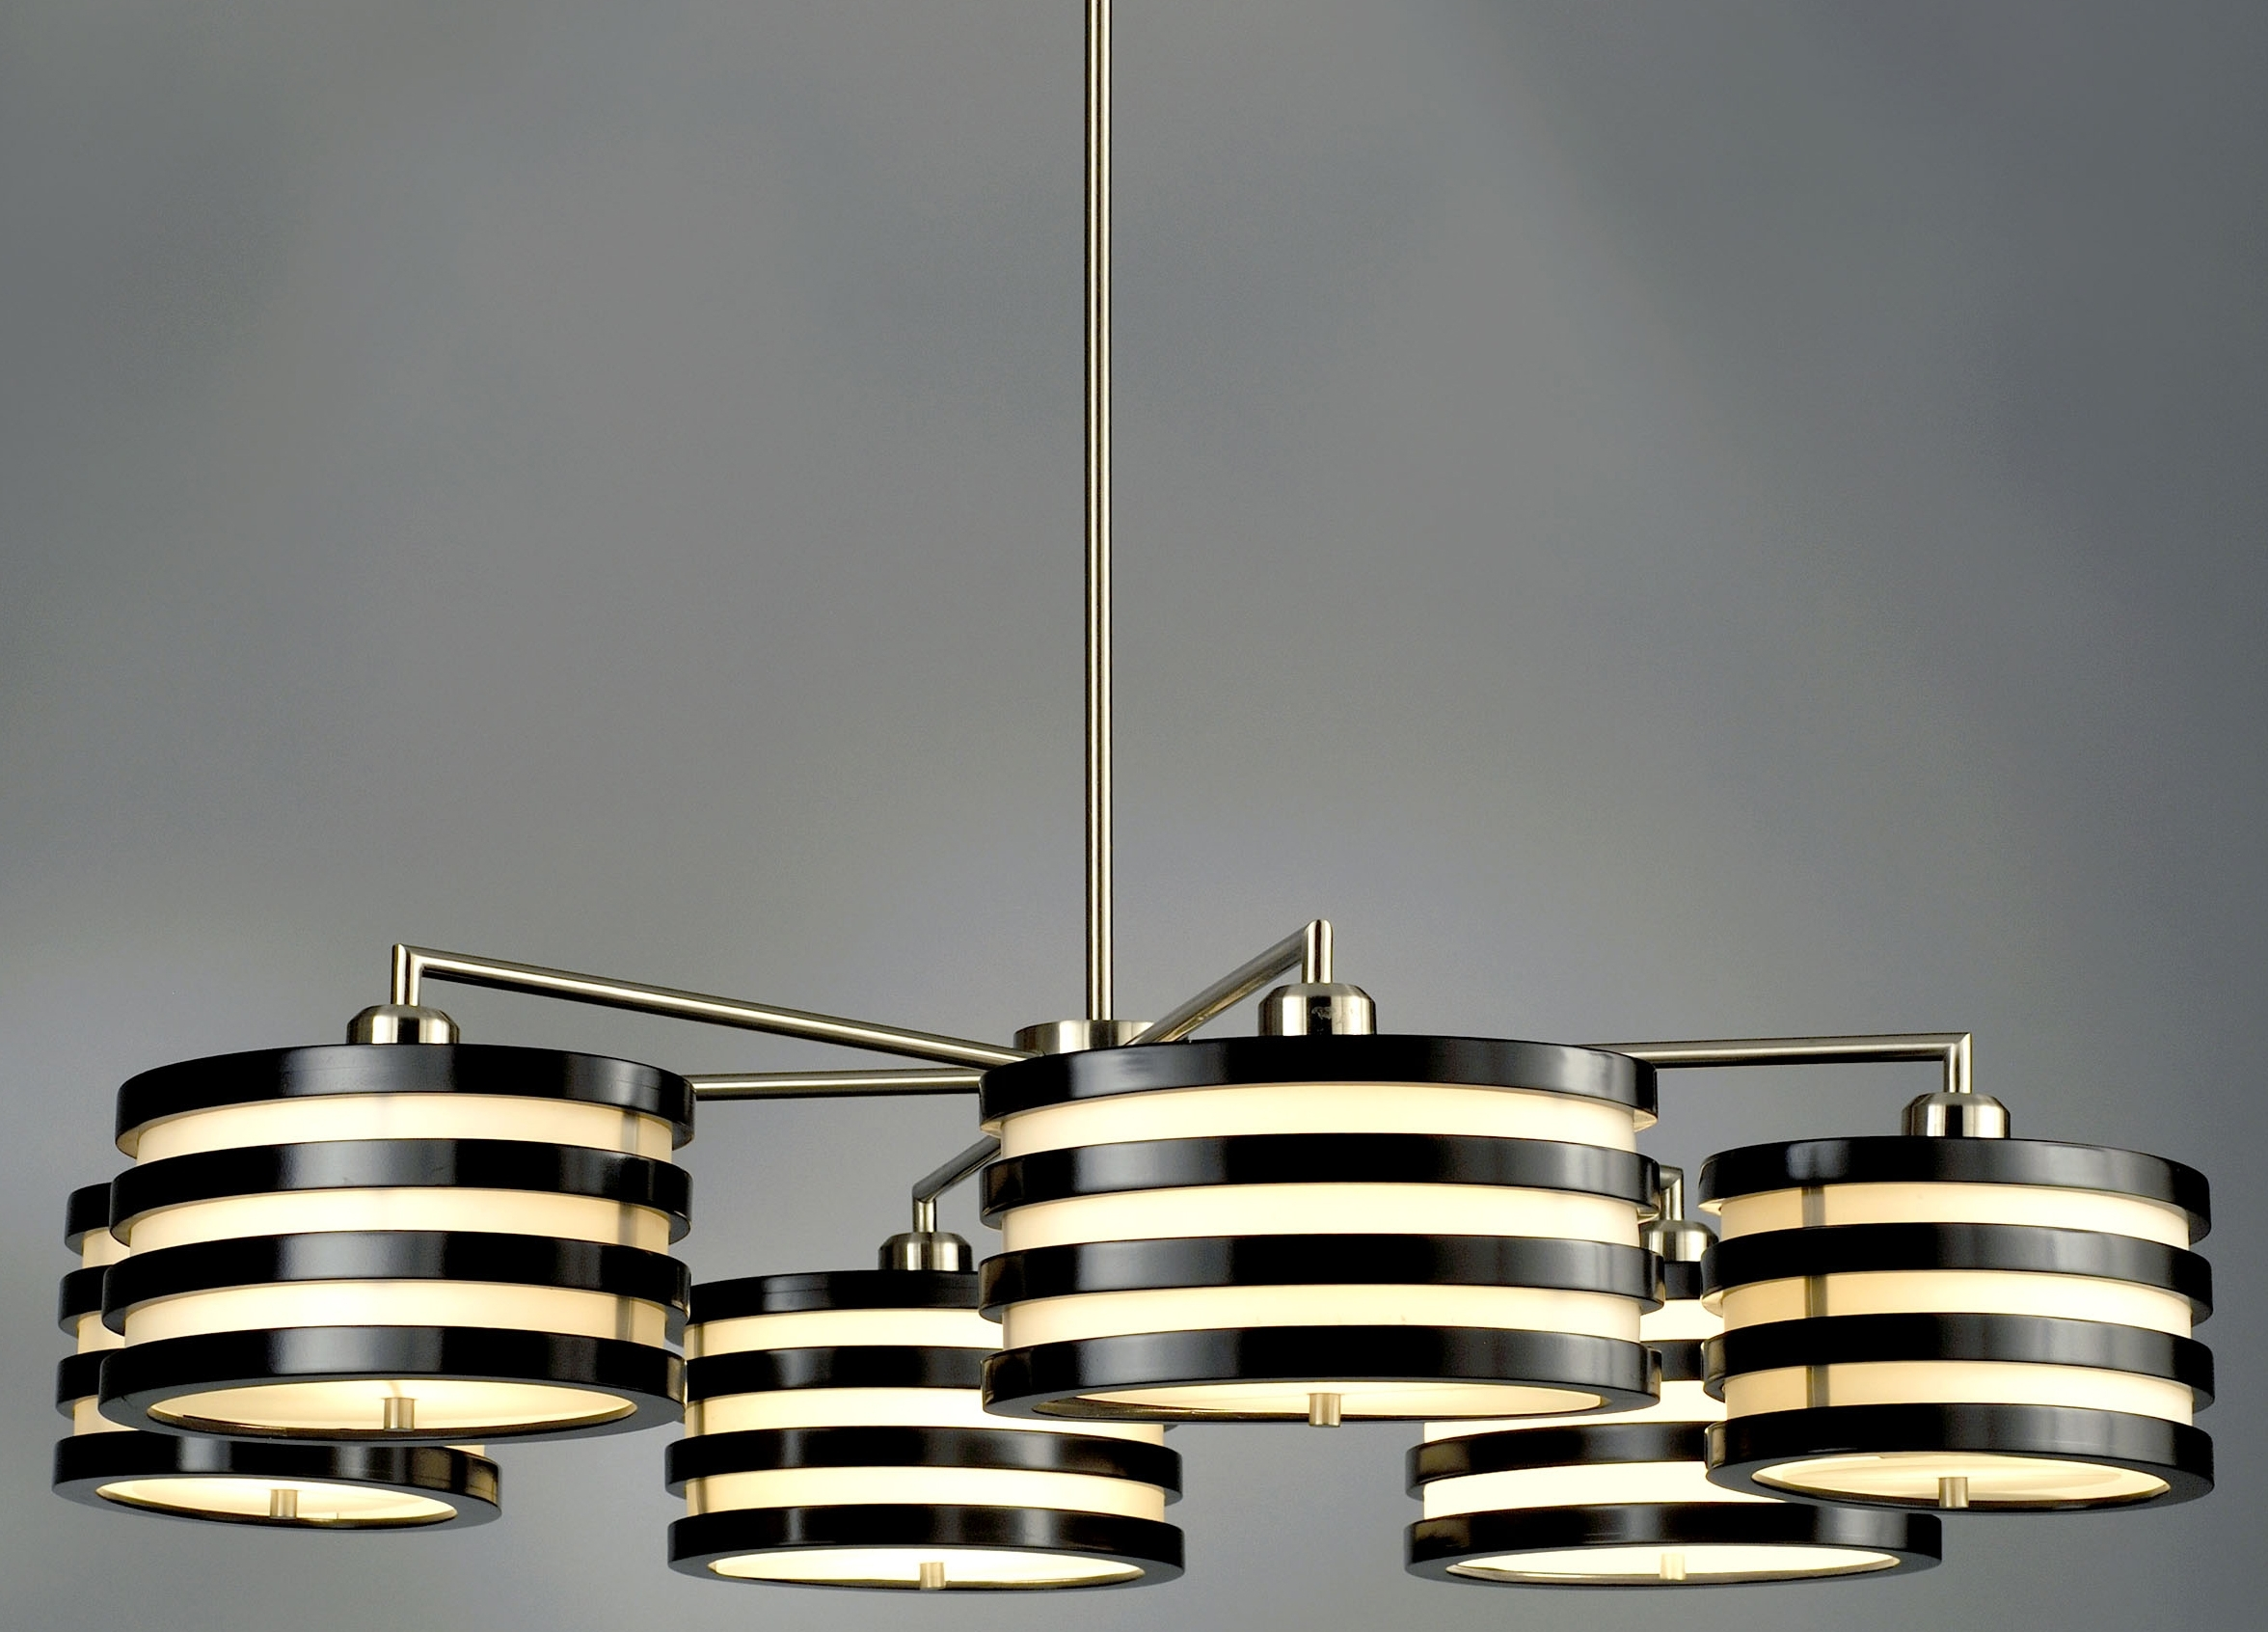 Home Decor + Home Lighting Blog » Blog Archive » Nova Lighting Kobe For Popular Contemporary Modern Chandeliers (View 8 of 20)